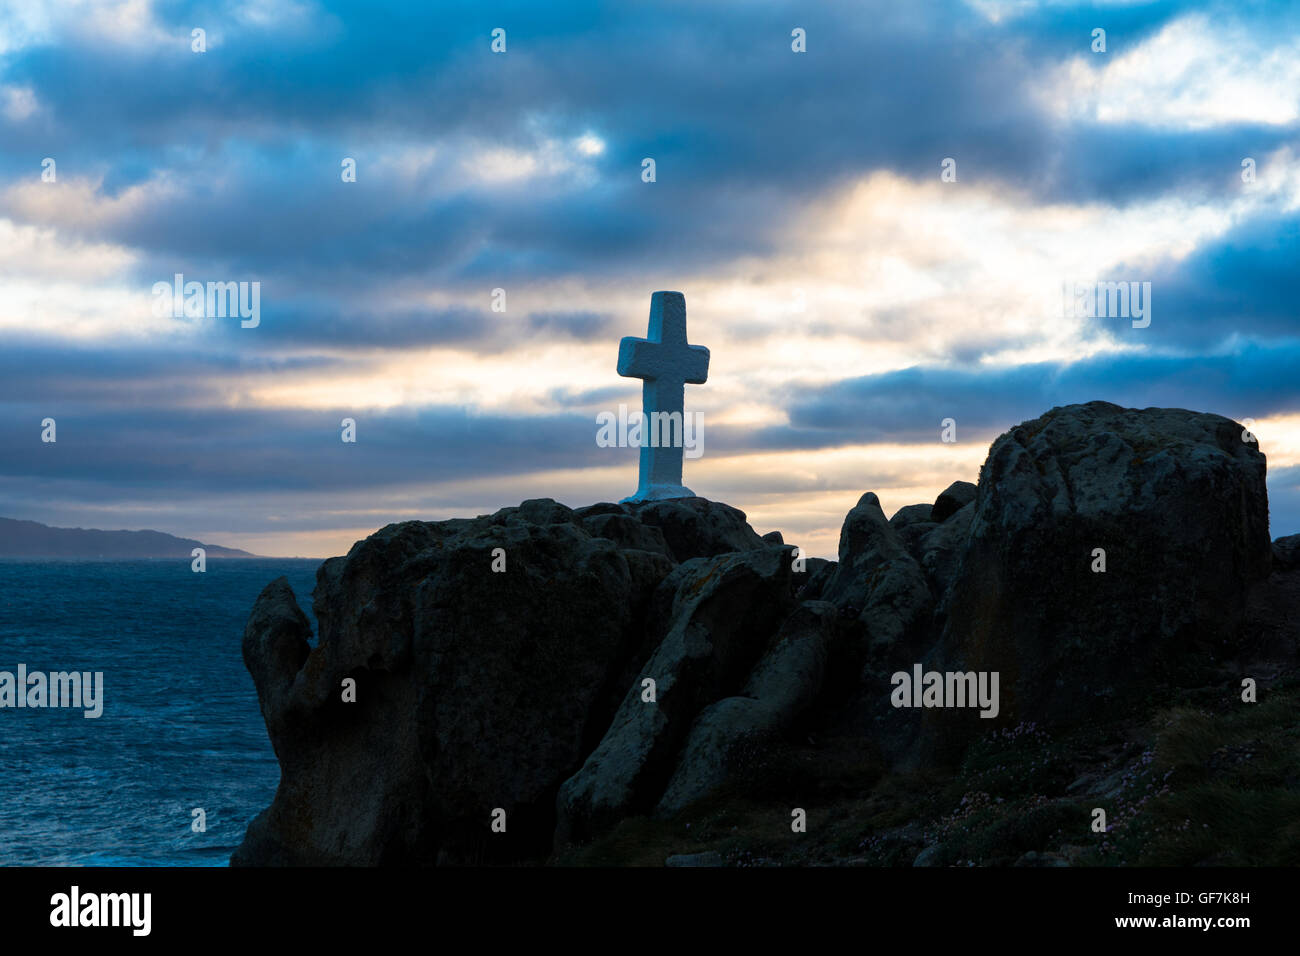 Cross On Shore Against Cloudy Sky - Stock Image